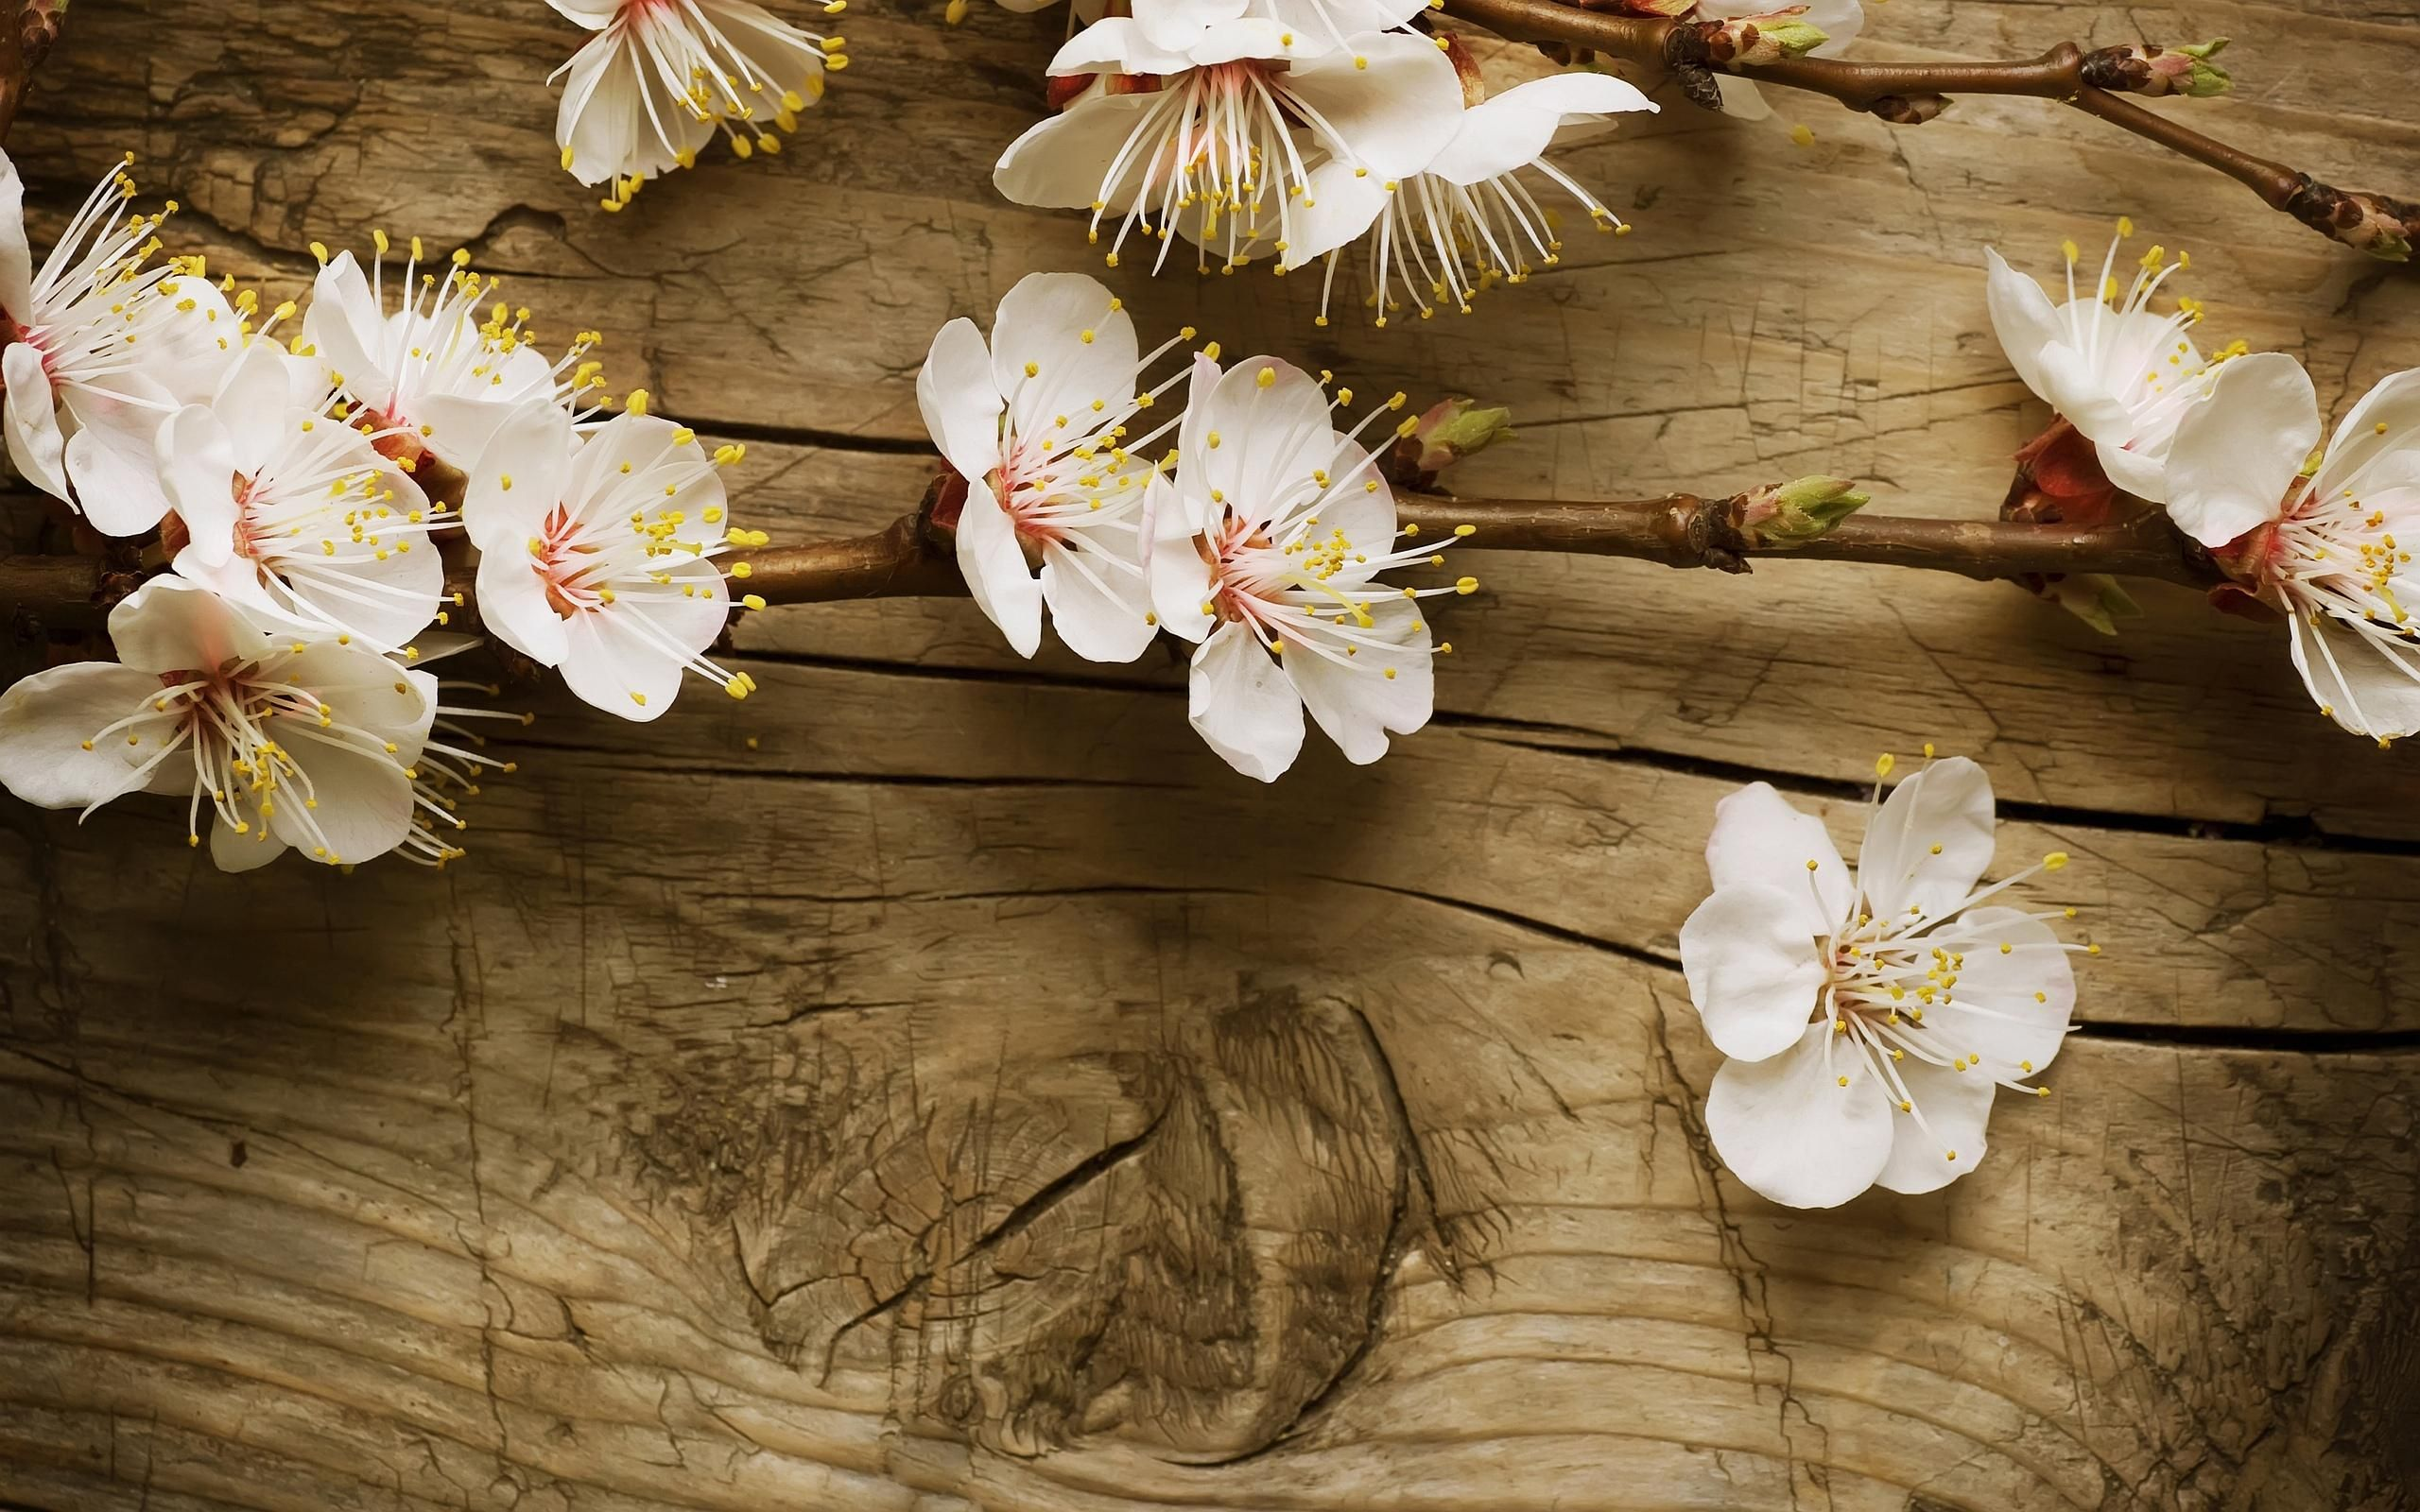 nice cherry blossom wood wallpaper Check more at http://www.finewallpapers.eu/pin/19168/